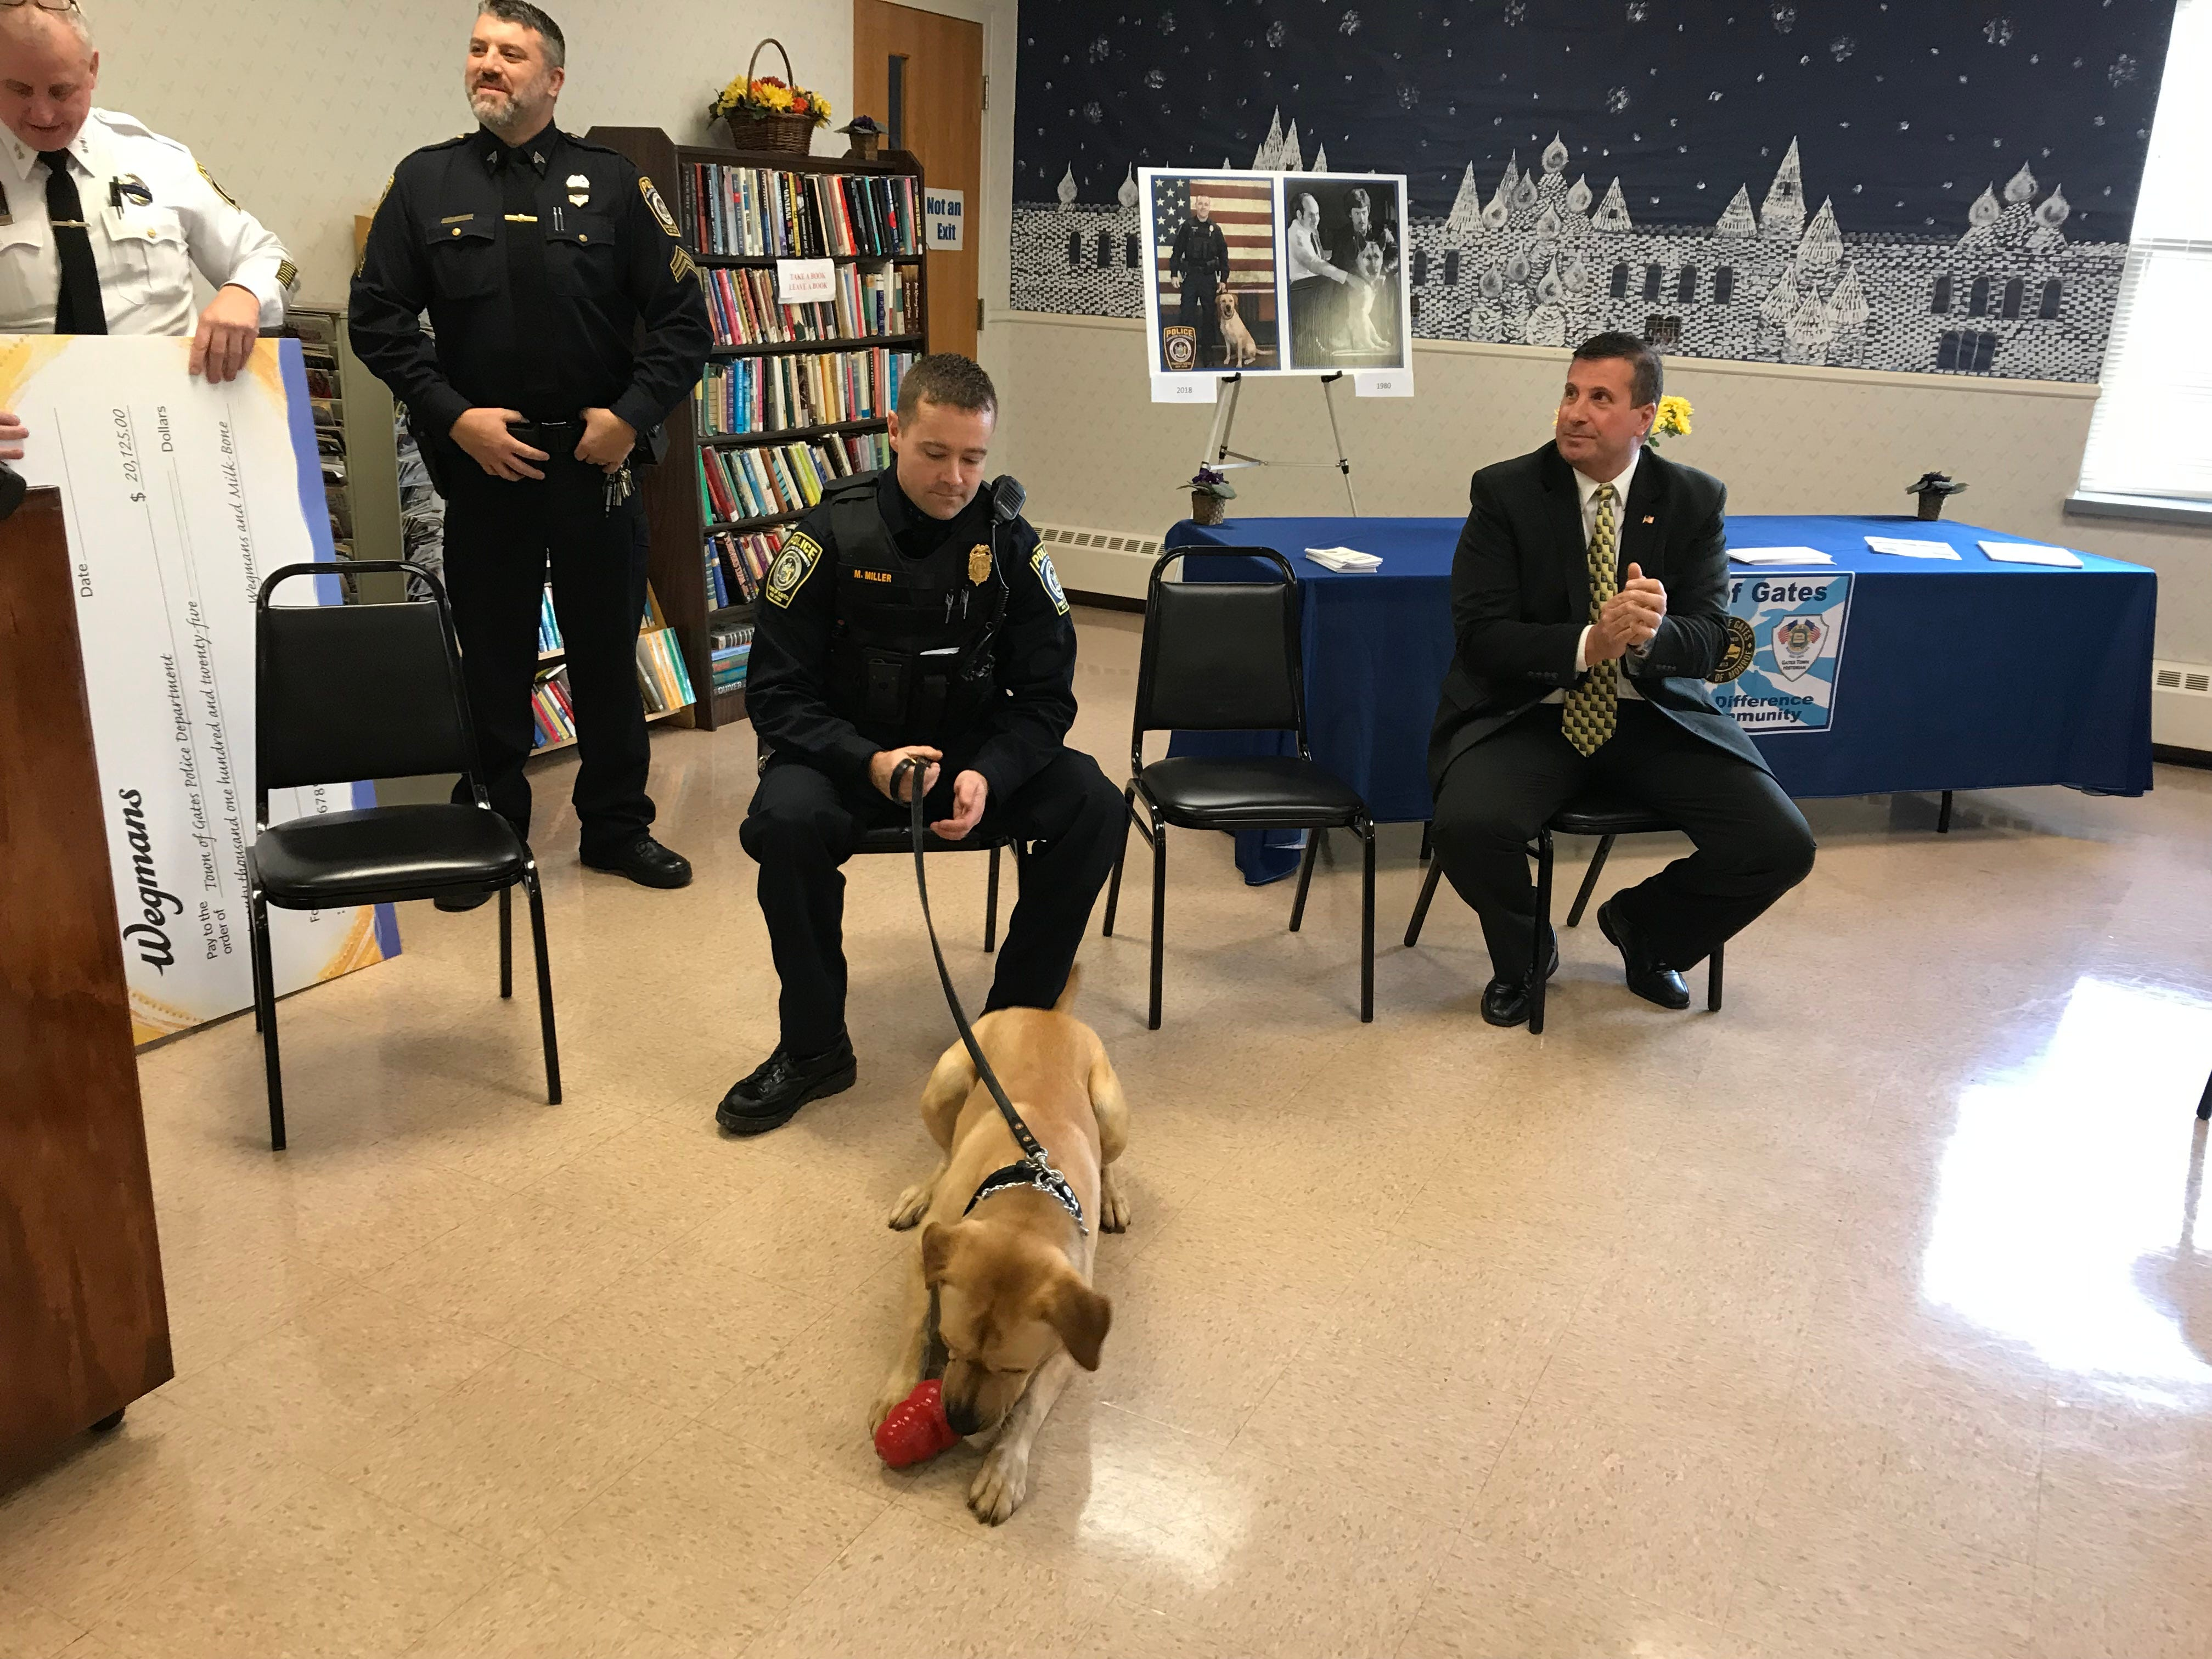 Sonny, the Gates Police Department's drug dog, ignores the hubbub and plays with a toy at a news conference Dec. 3 to announce his arrival on the force. Officer Matthew Miller is his handler. Gates Supervisor Cosmo Guinta is at right.